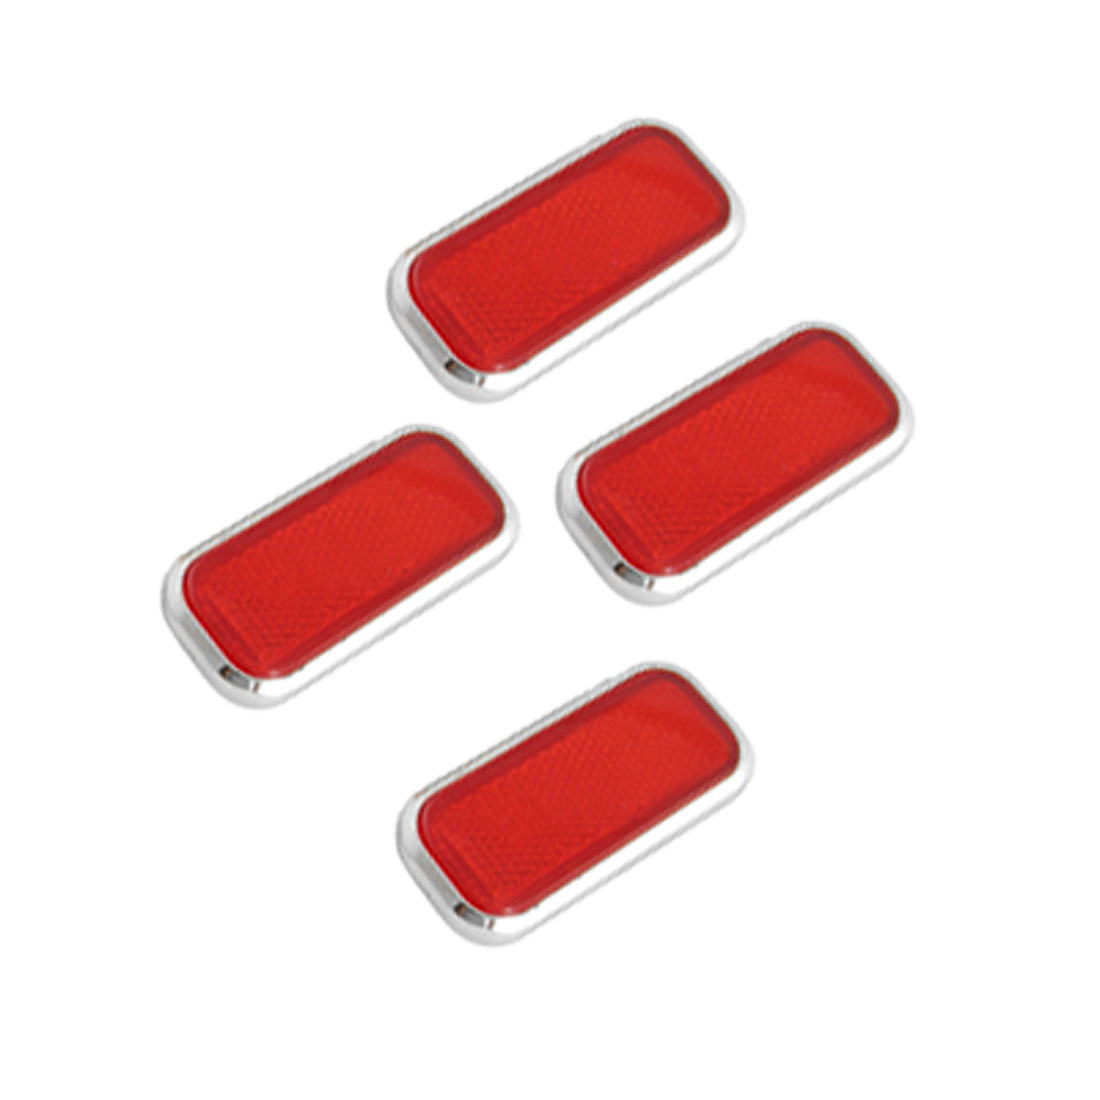 Red 3D Rectangle Shape Reflective Sticker for Car Vehicle